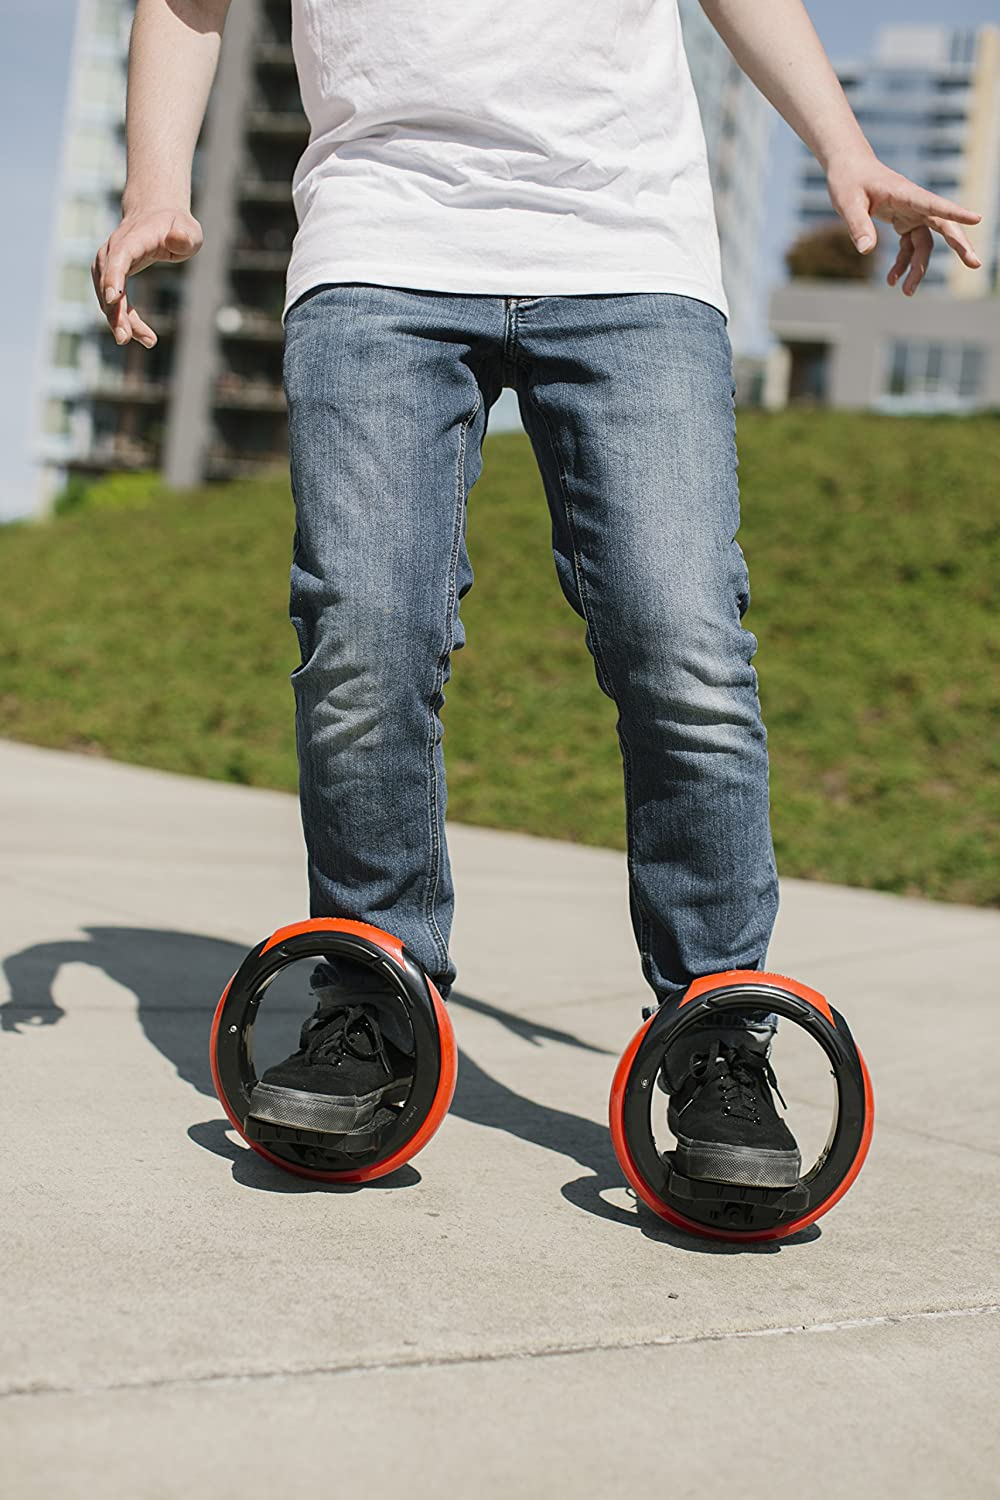 Transportation Has Never Been So Fun Portable and Convenient Wheeled Red /& Black Sport Skates Inventist Orbitwheel Boardless Skateboard Compact and Easy to Carry